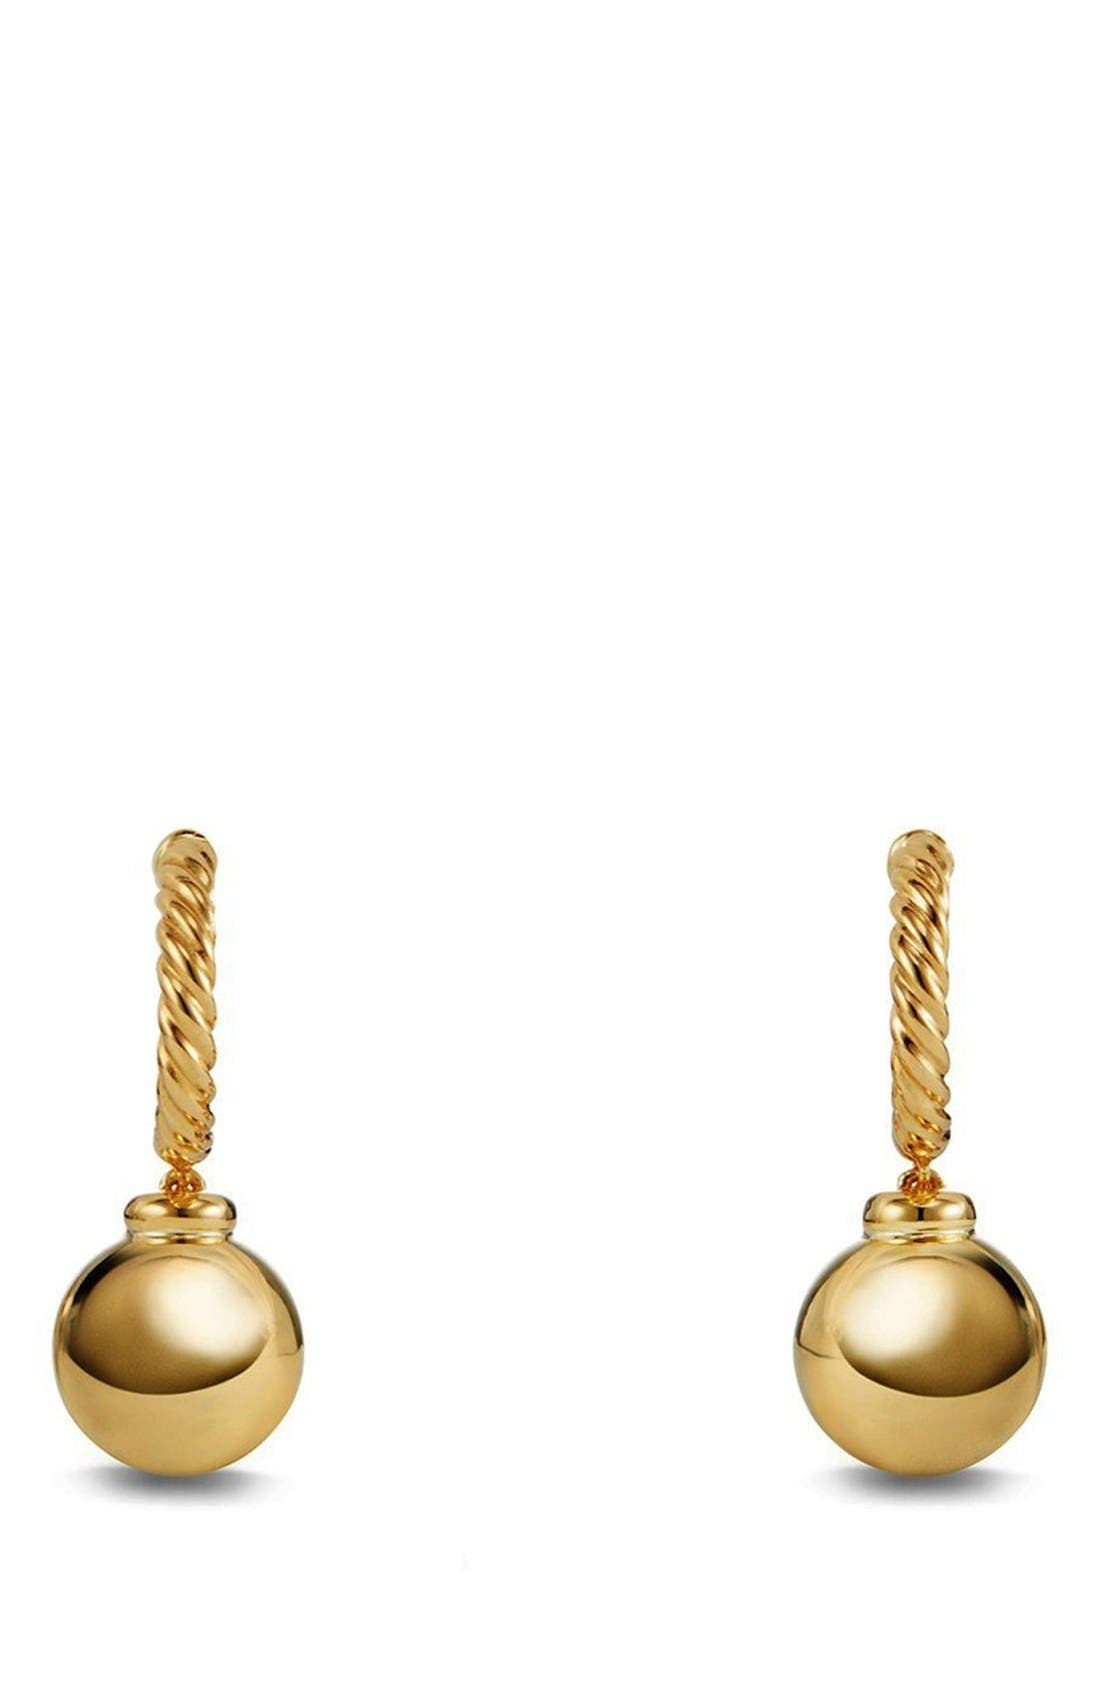 DAVID YURMAN Solari Hoop Earrings in 18K Gold